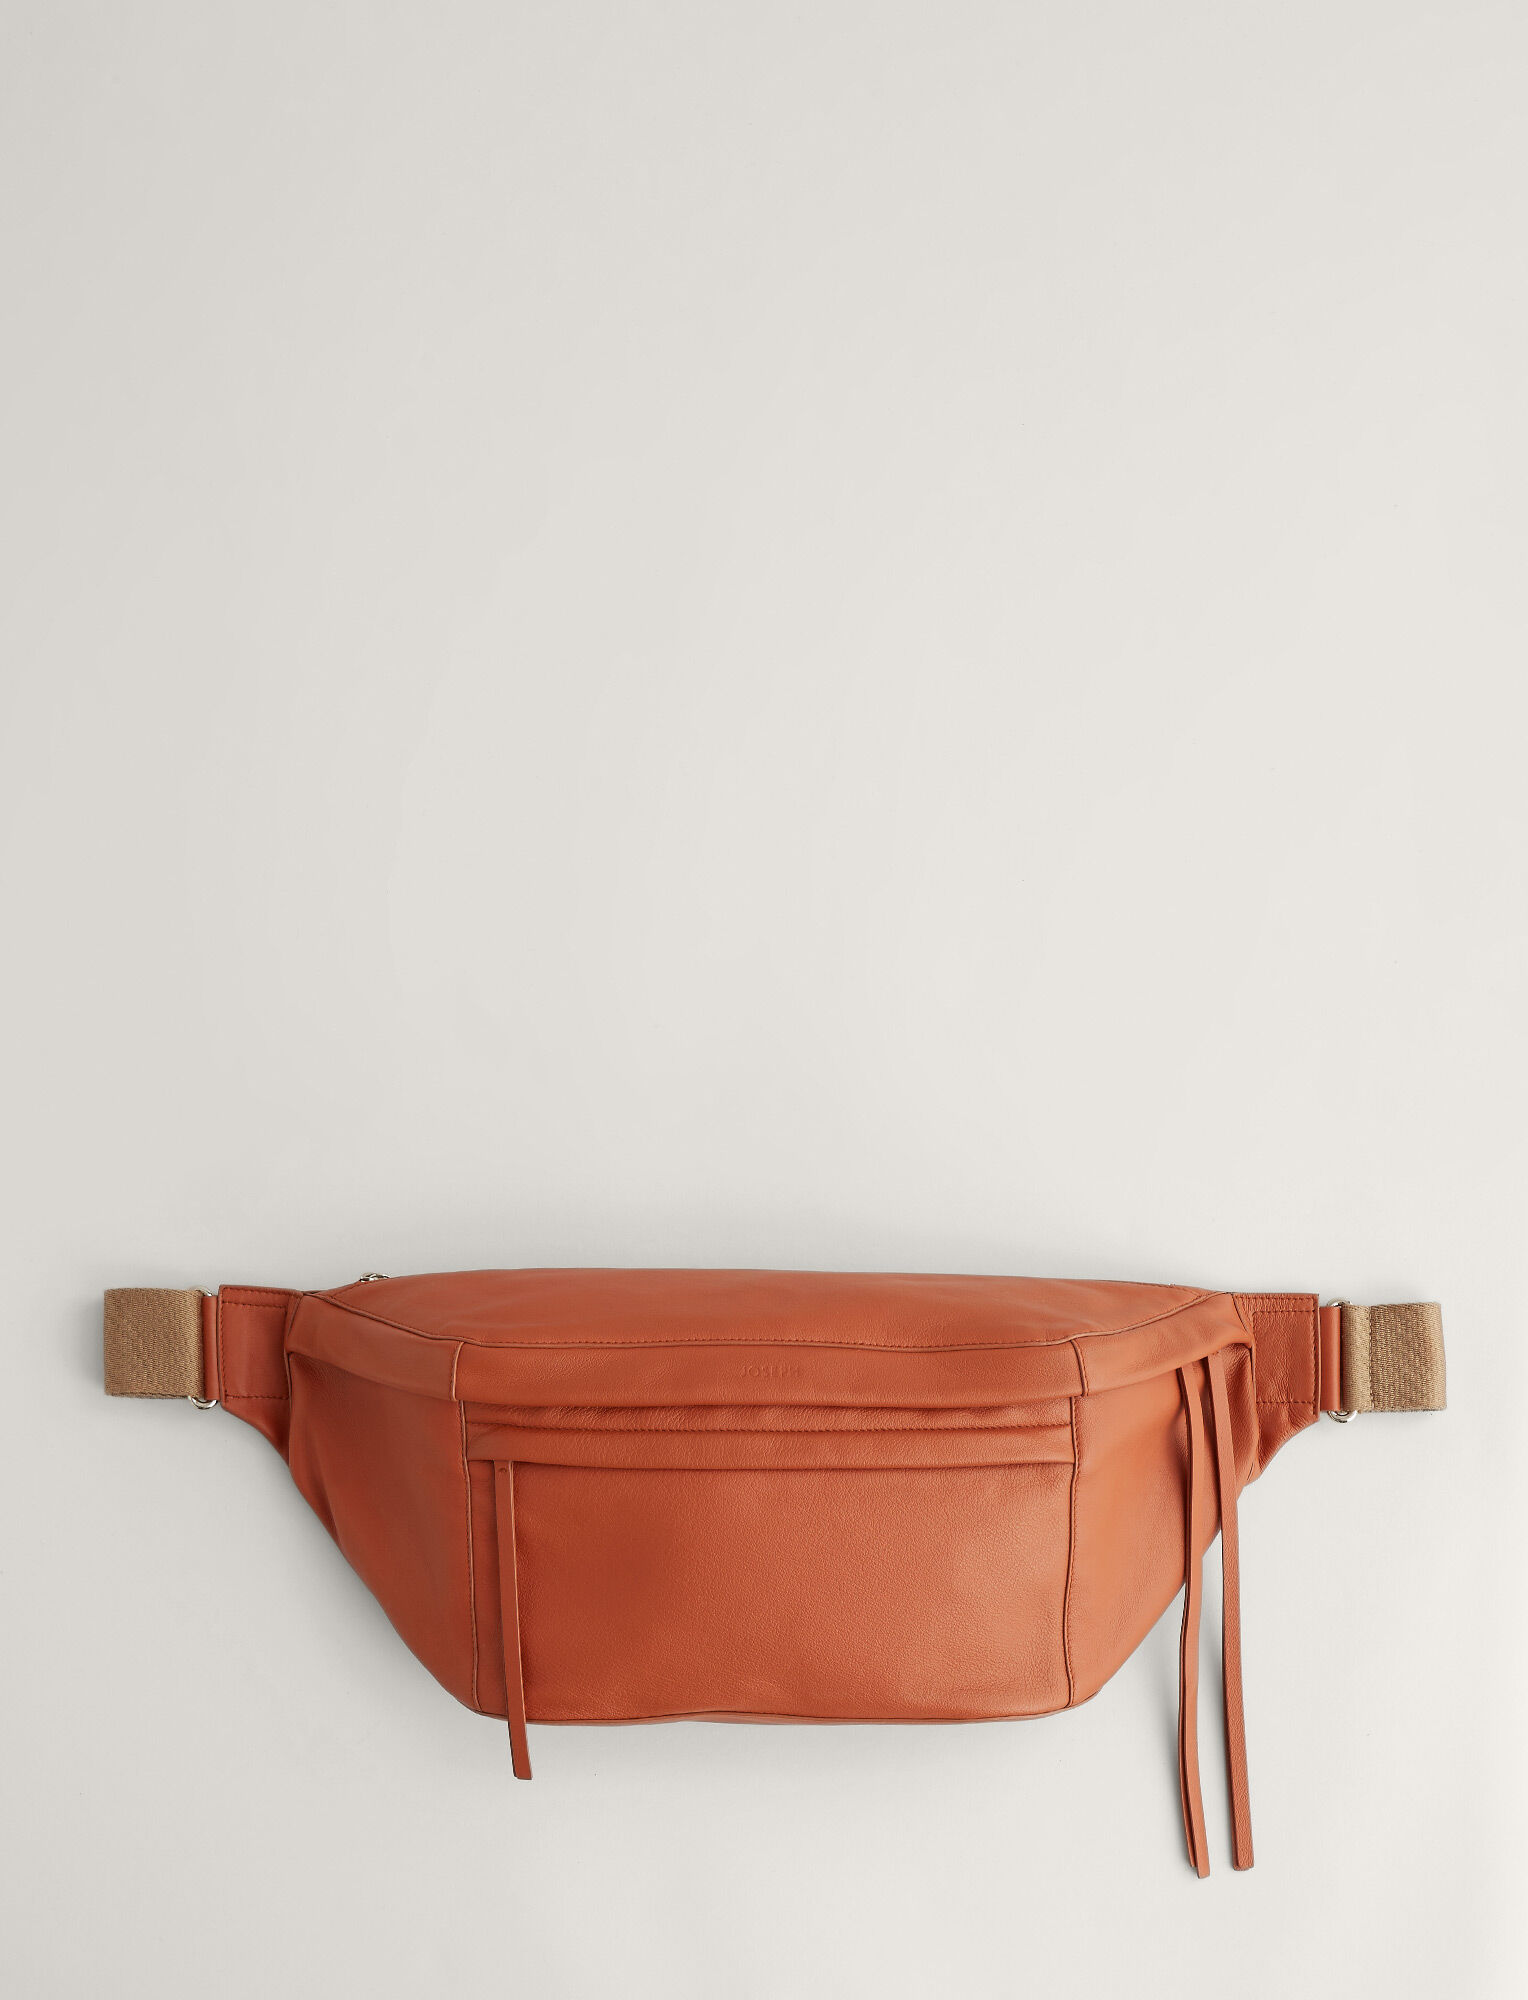 Joseph, Harley Leather Bag, in RUST